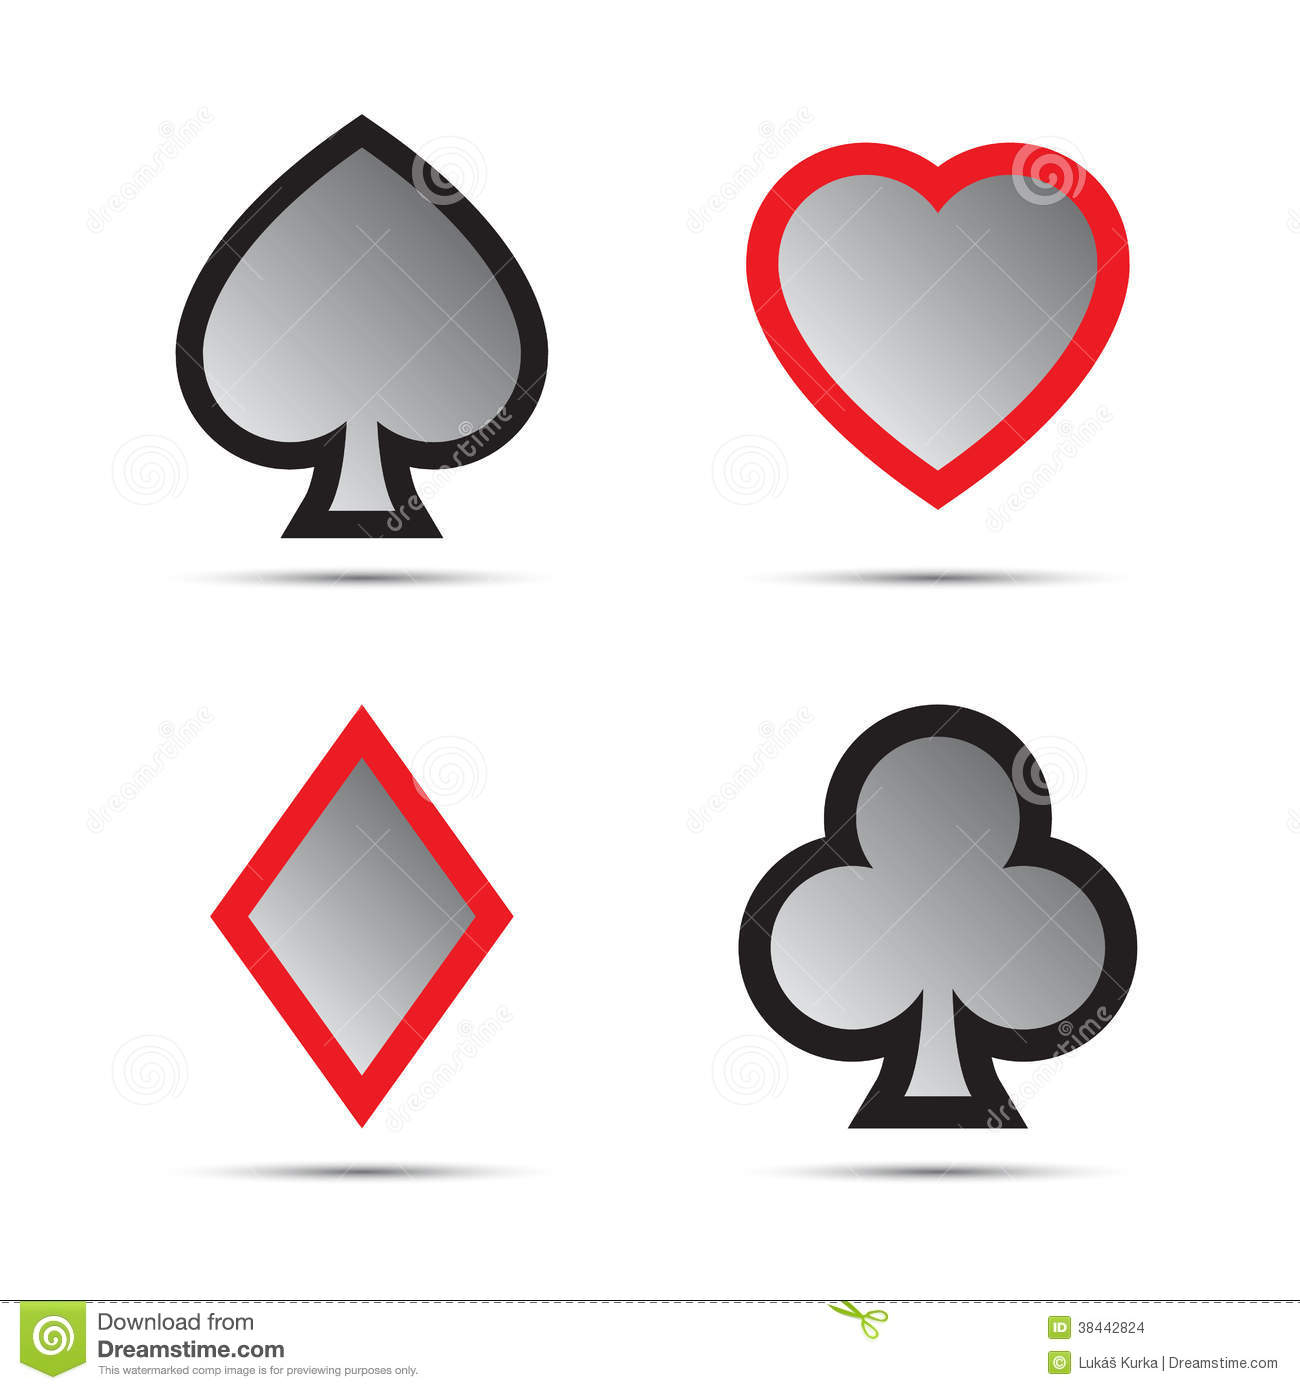 Playing Card Symbols Stock Vector Illustration Of Deck 38442824